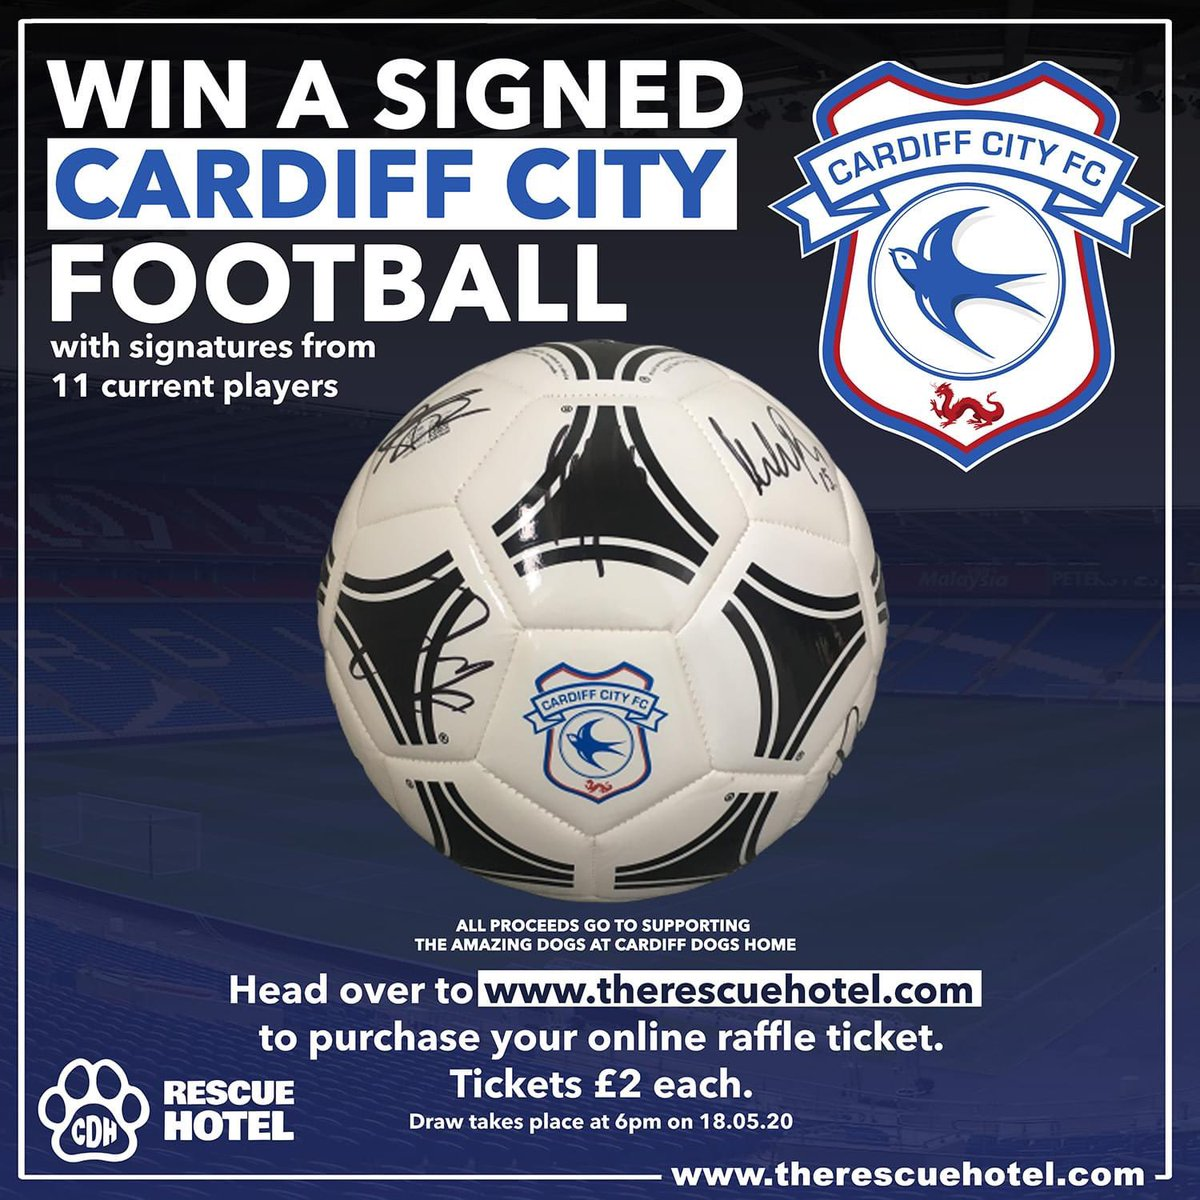 We currently have an online raffle, where you can win a signed @CardiffCityFC football. It is £2 per ticket, your ticket number will be emailed when purchased. 🐶please visit link in bio to enter Good luck, and please RT, all proceeds will go towards the pups and their care🐶